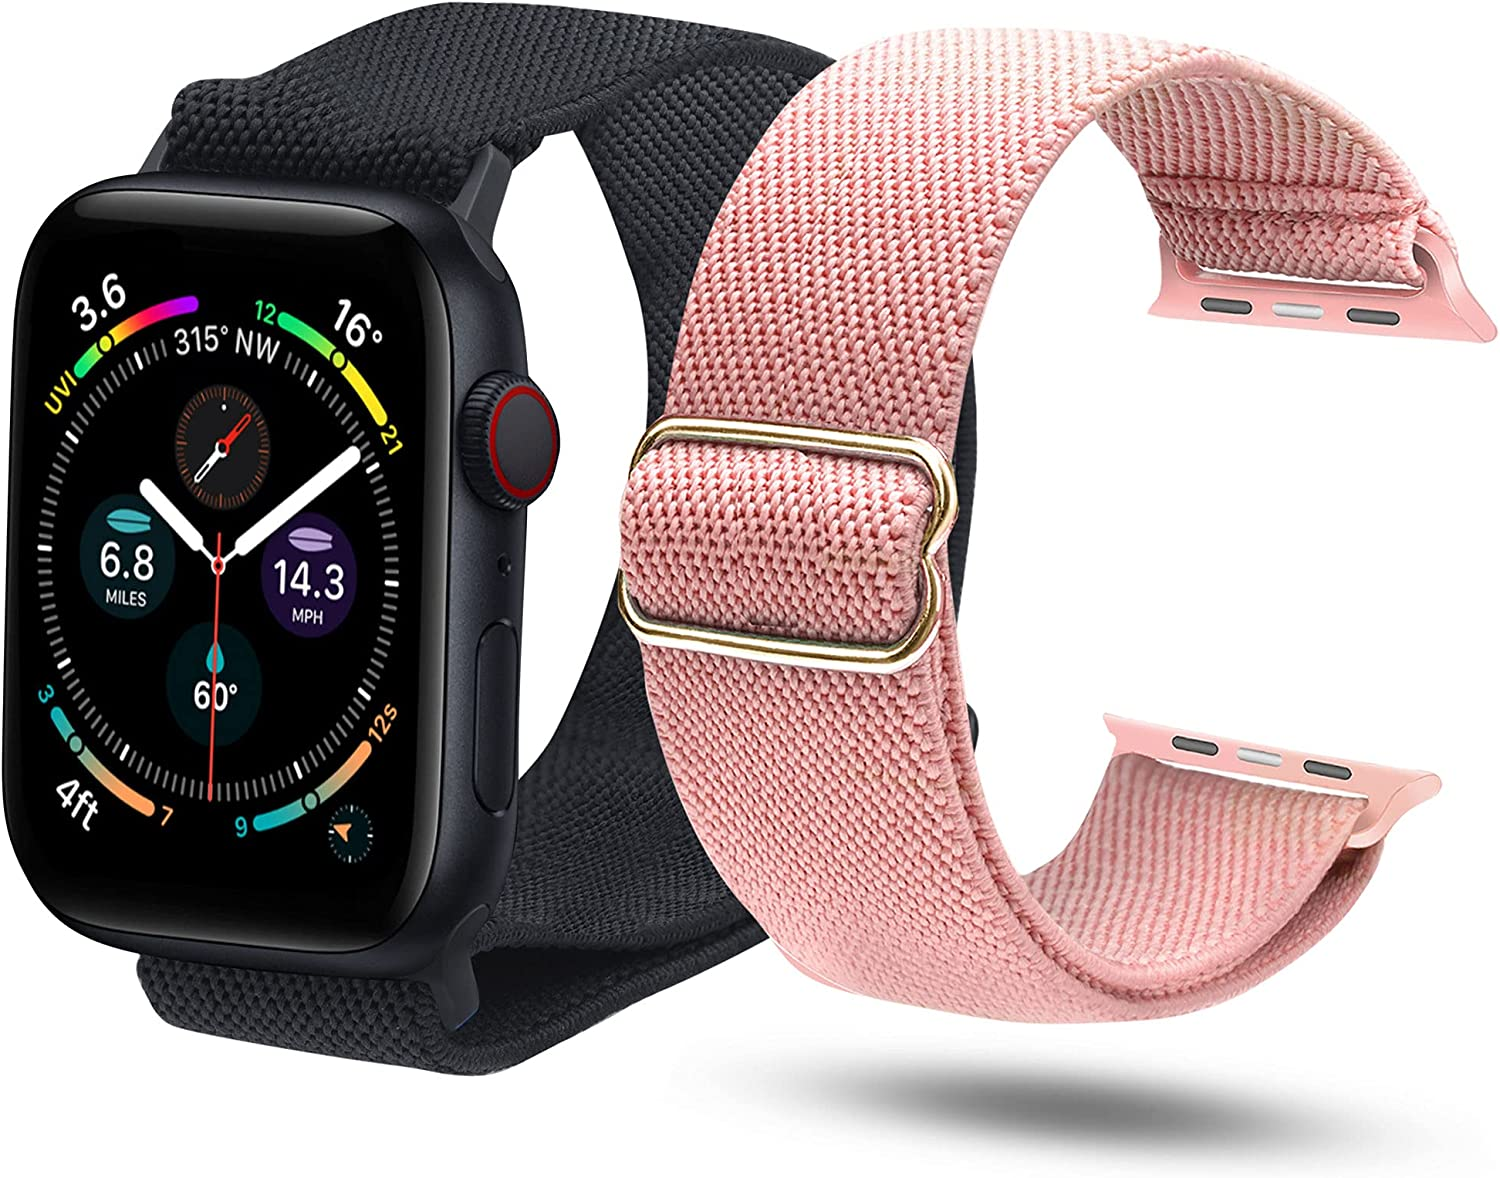 ULUQ Compatible with Apple Watch Bands 40mm 38mm for iWatch Series 6 5 4 3 2 1 SE, Adjustable Stretch Strap, Sport Elastics Wristbands Women Men, 2Pack